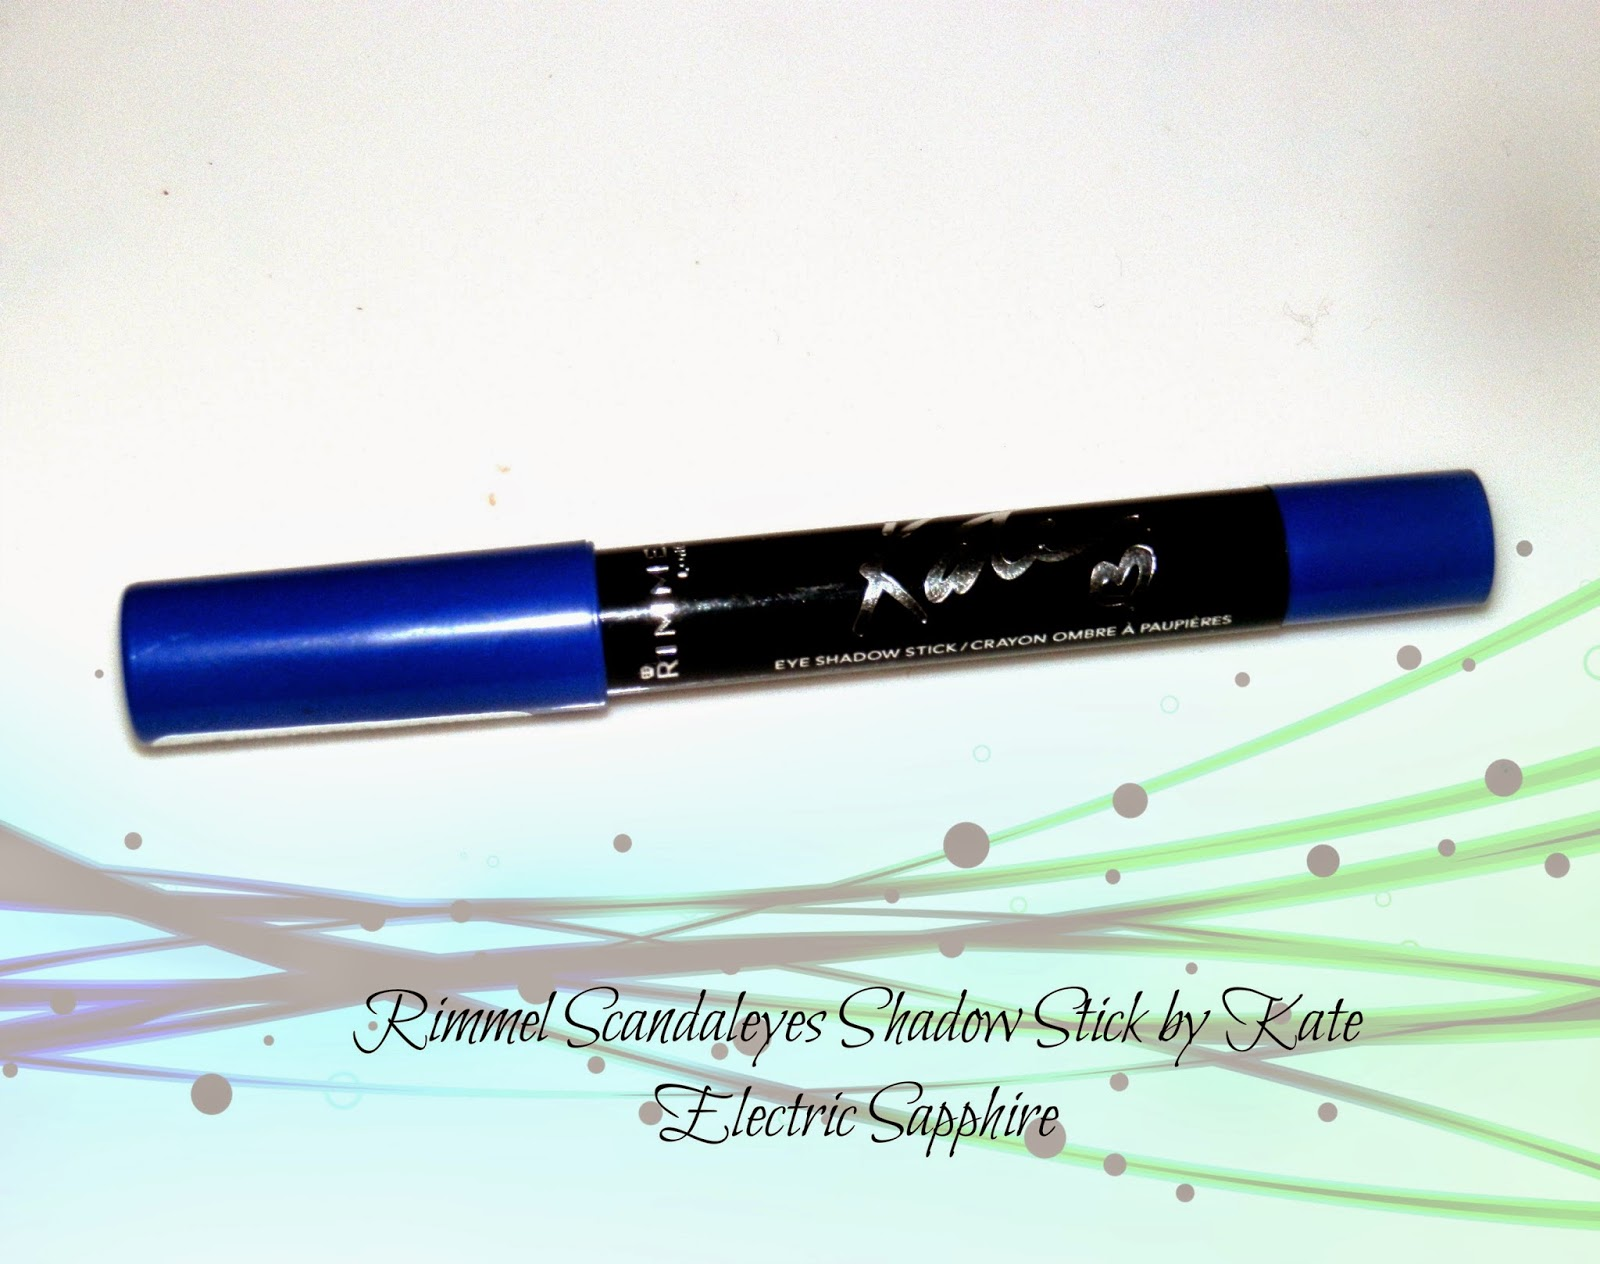 Rimmel Scandaleyes Shadow Stick by Kate Electric Sapphire